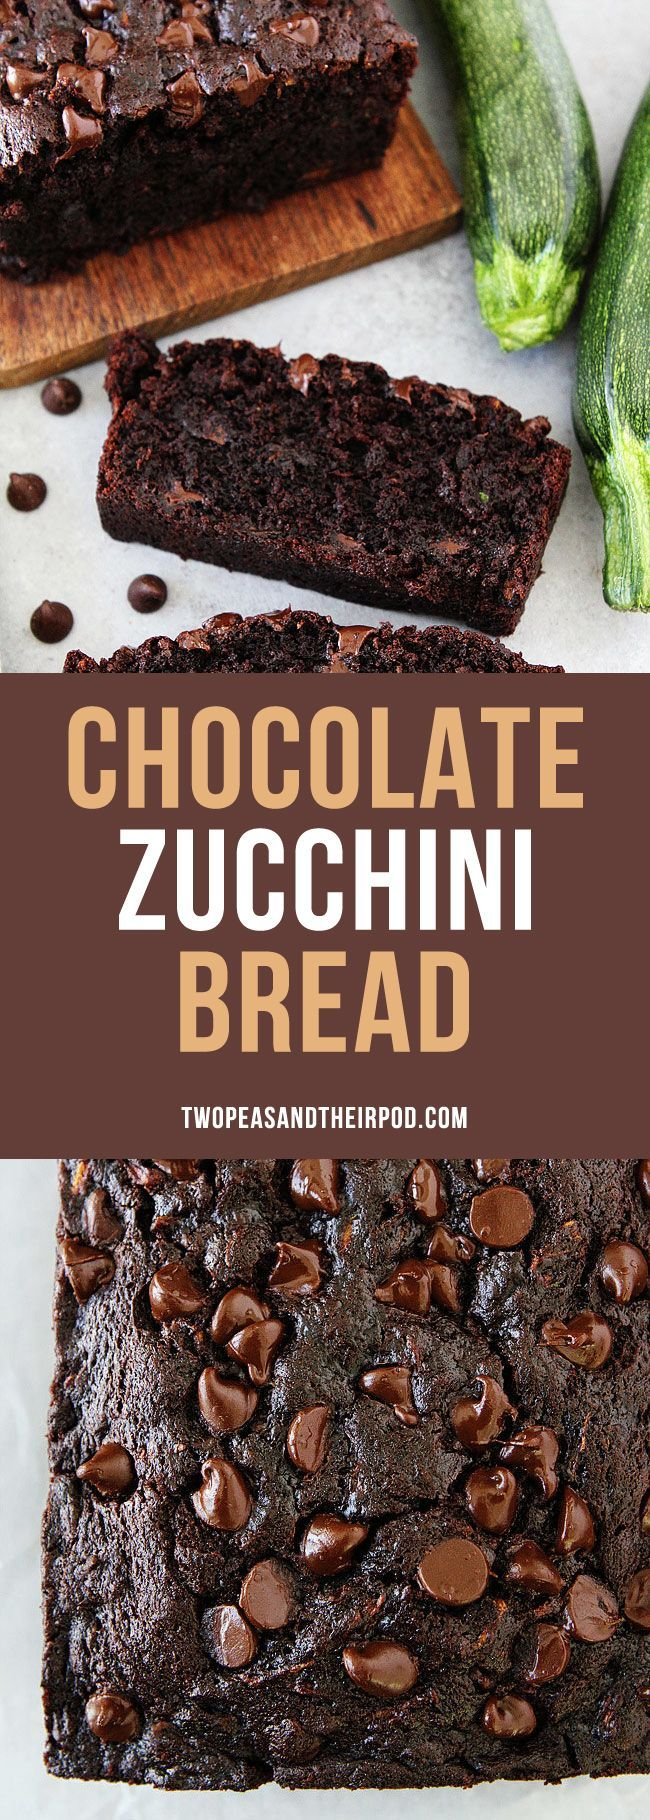 Chocolate Zucchini Bread this easy moist zucchini quick bread recipe is the BEST! #zucchini #bread #zucchinibread